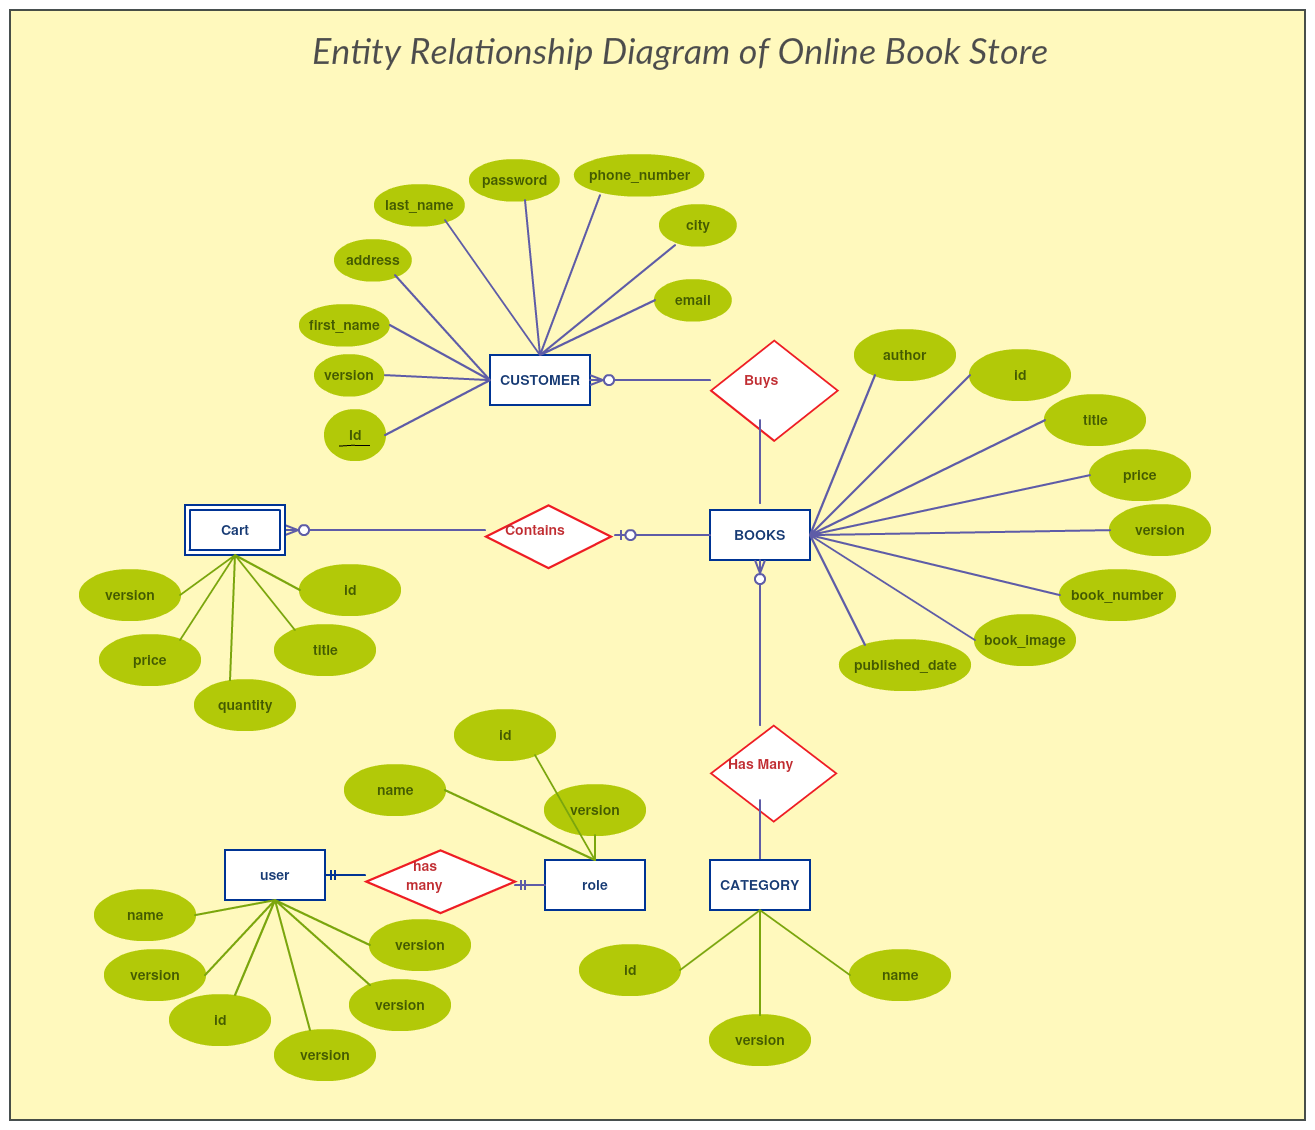 Entity Relationship Diagram Of Online Book Store The Diagram Is Widely Used In Database Design And S Relationship Diagram Relationship Books Online Bookstore